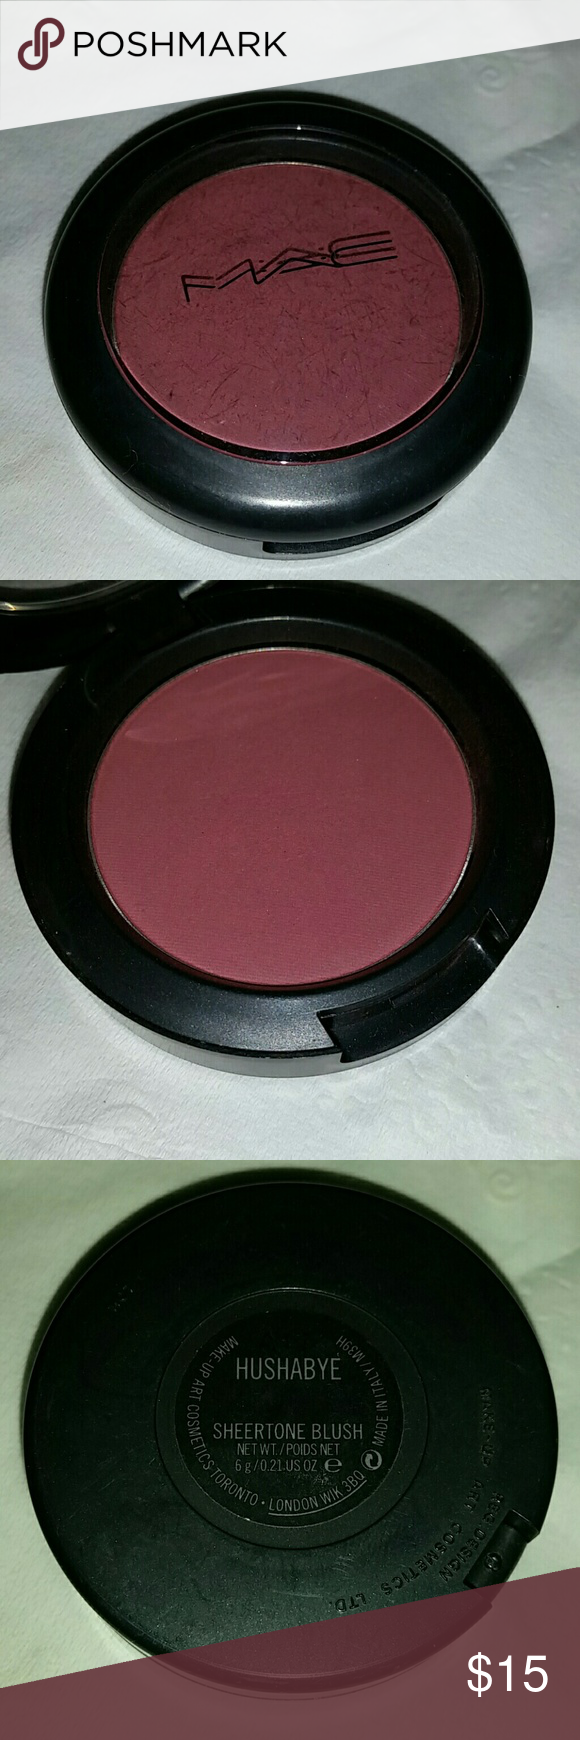 MAC blush Mac blush, Blush, Blush makeup